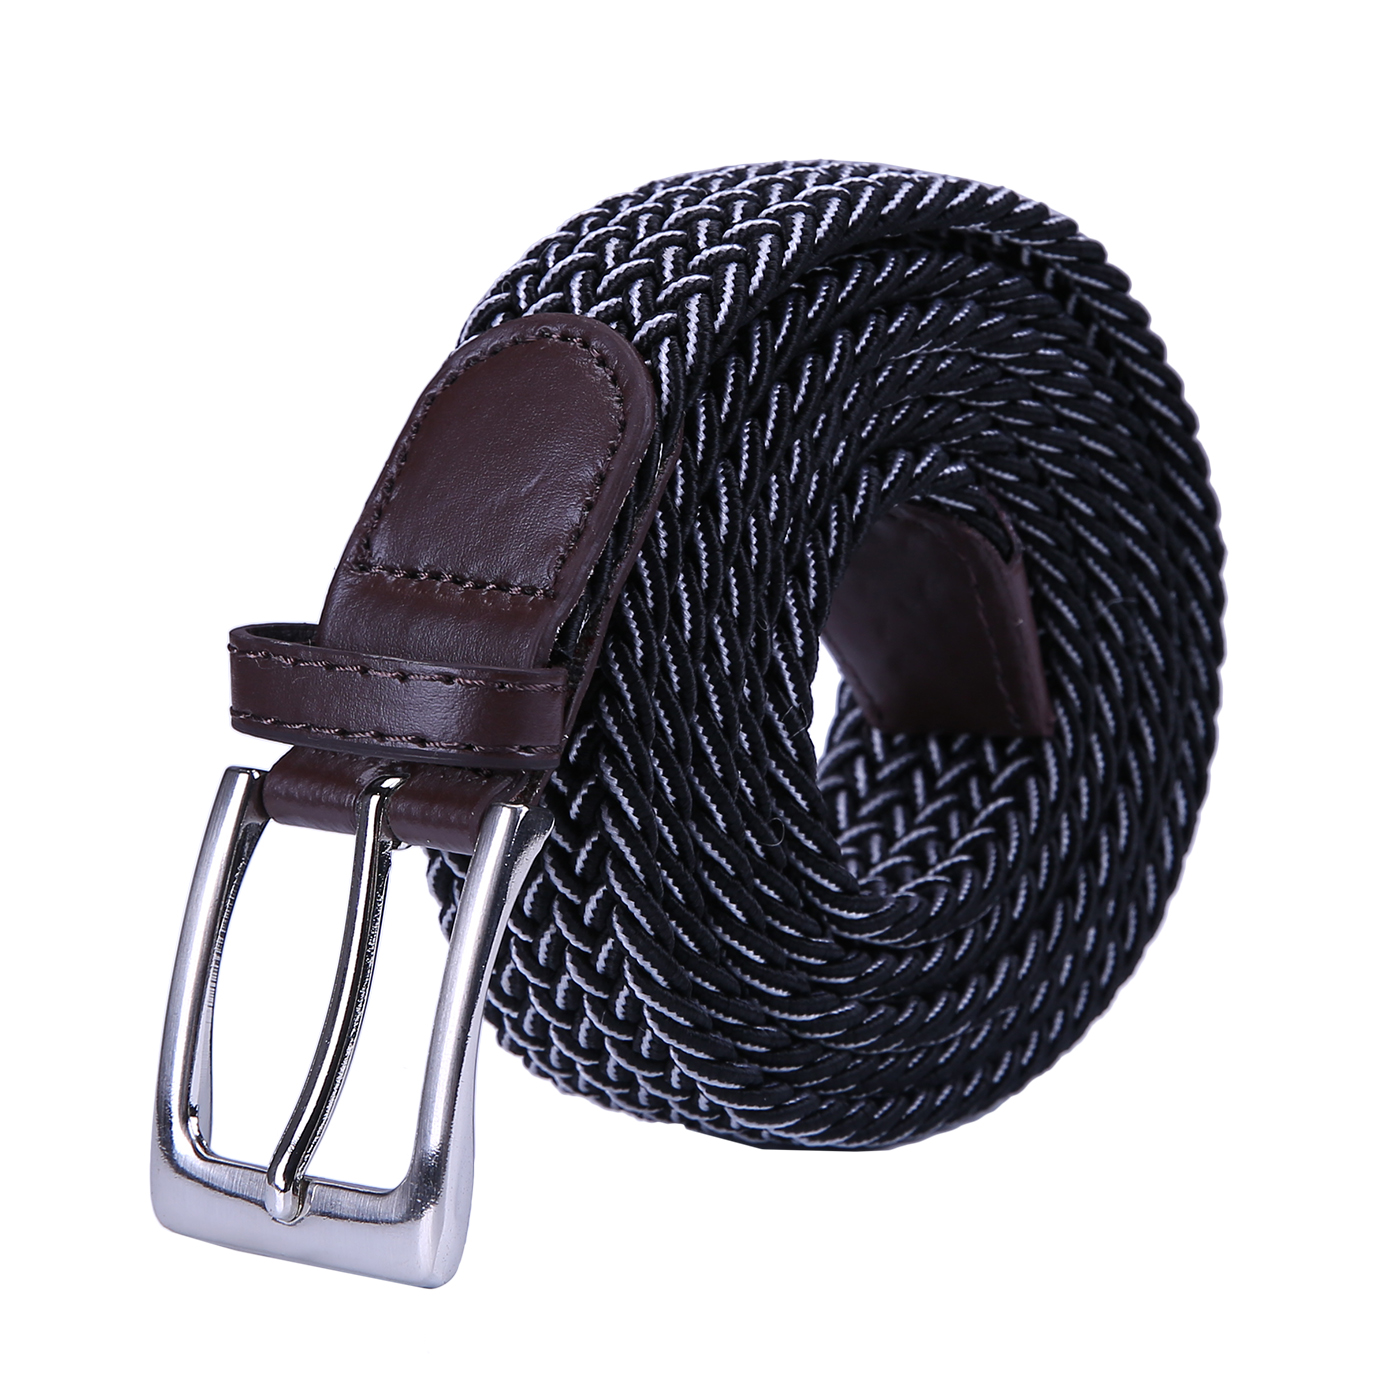 HDE Men's Braided Elastic Stretch Belt Leather Woven Design Silver Finish Buckle - image 1 de 1